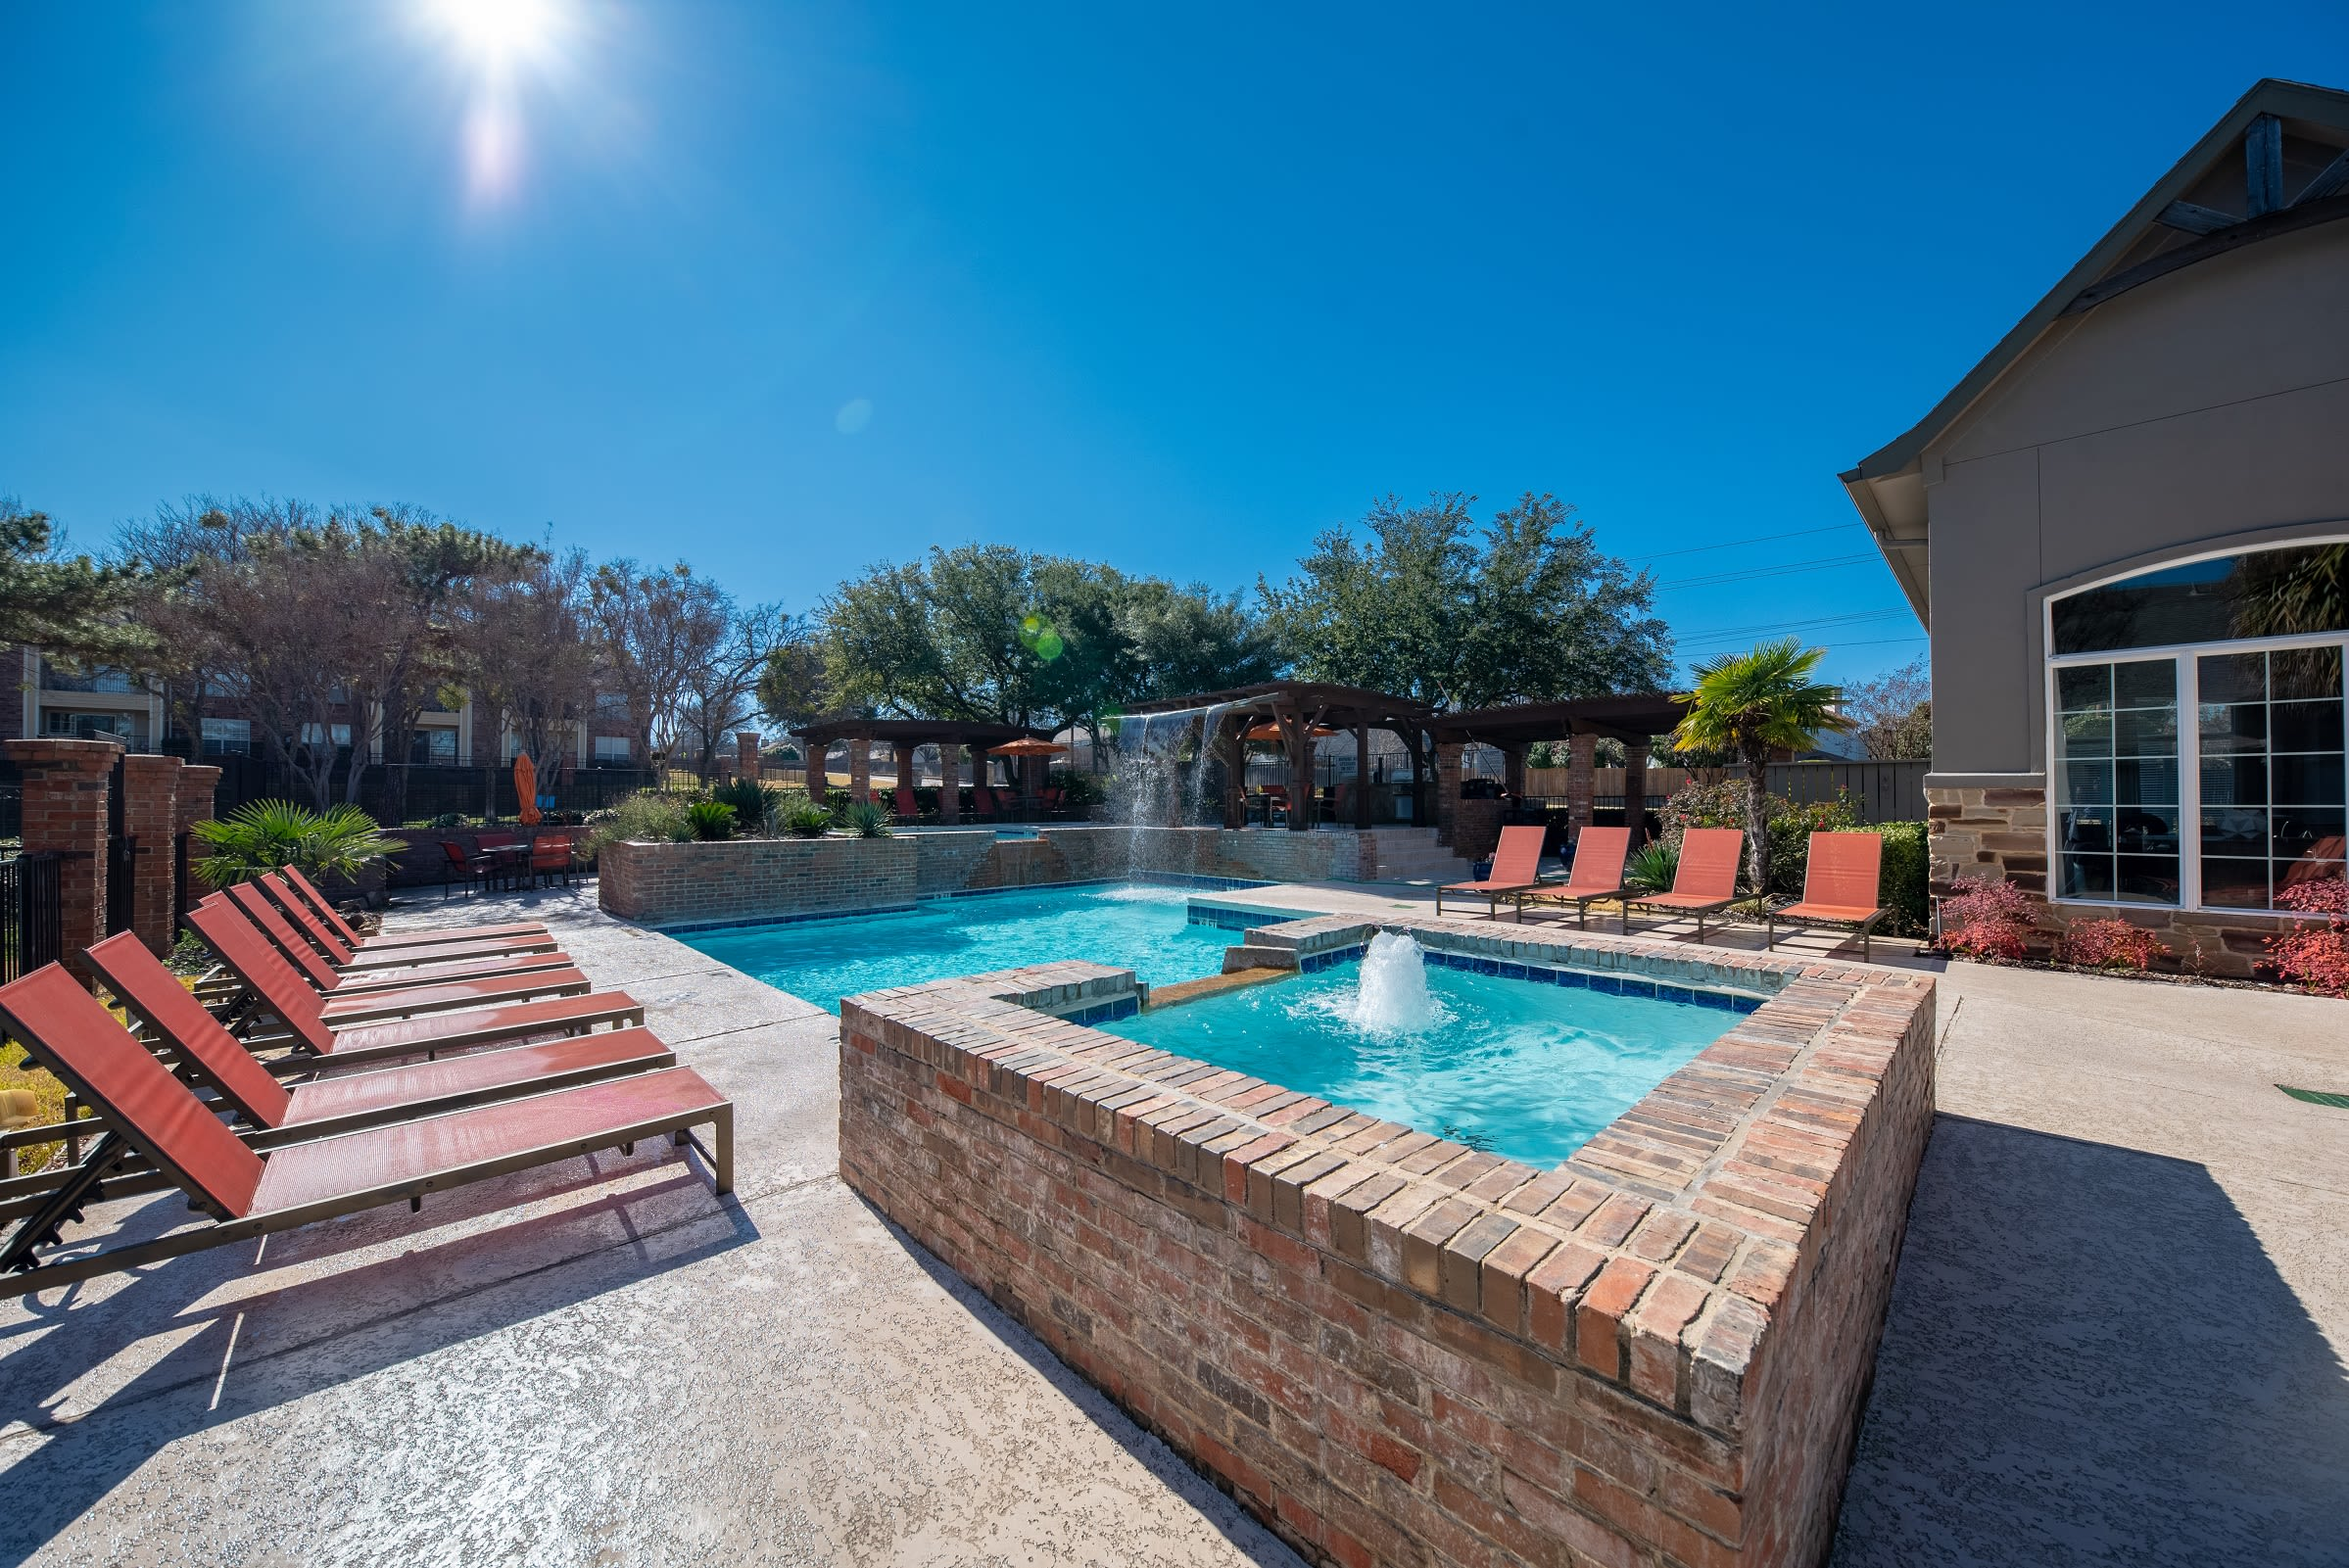 Hot tub at Village Green of Bear Creek in Euless, Texas